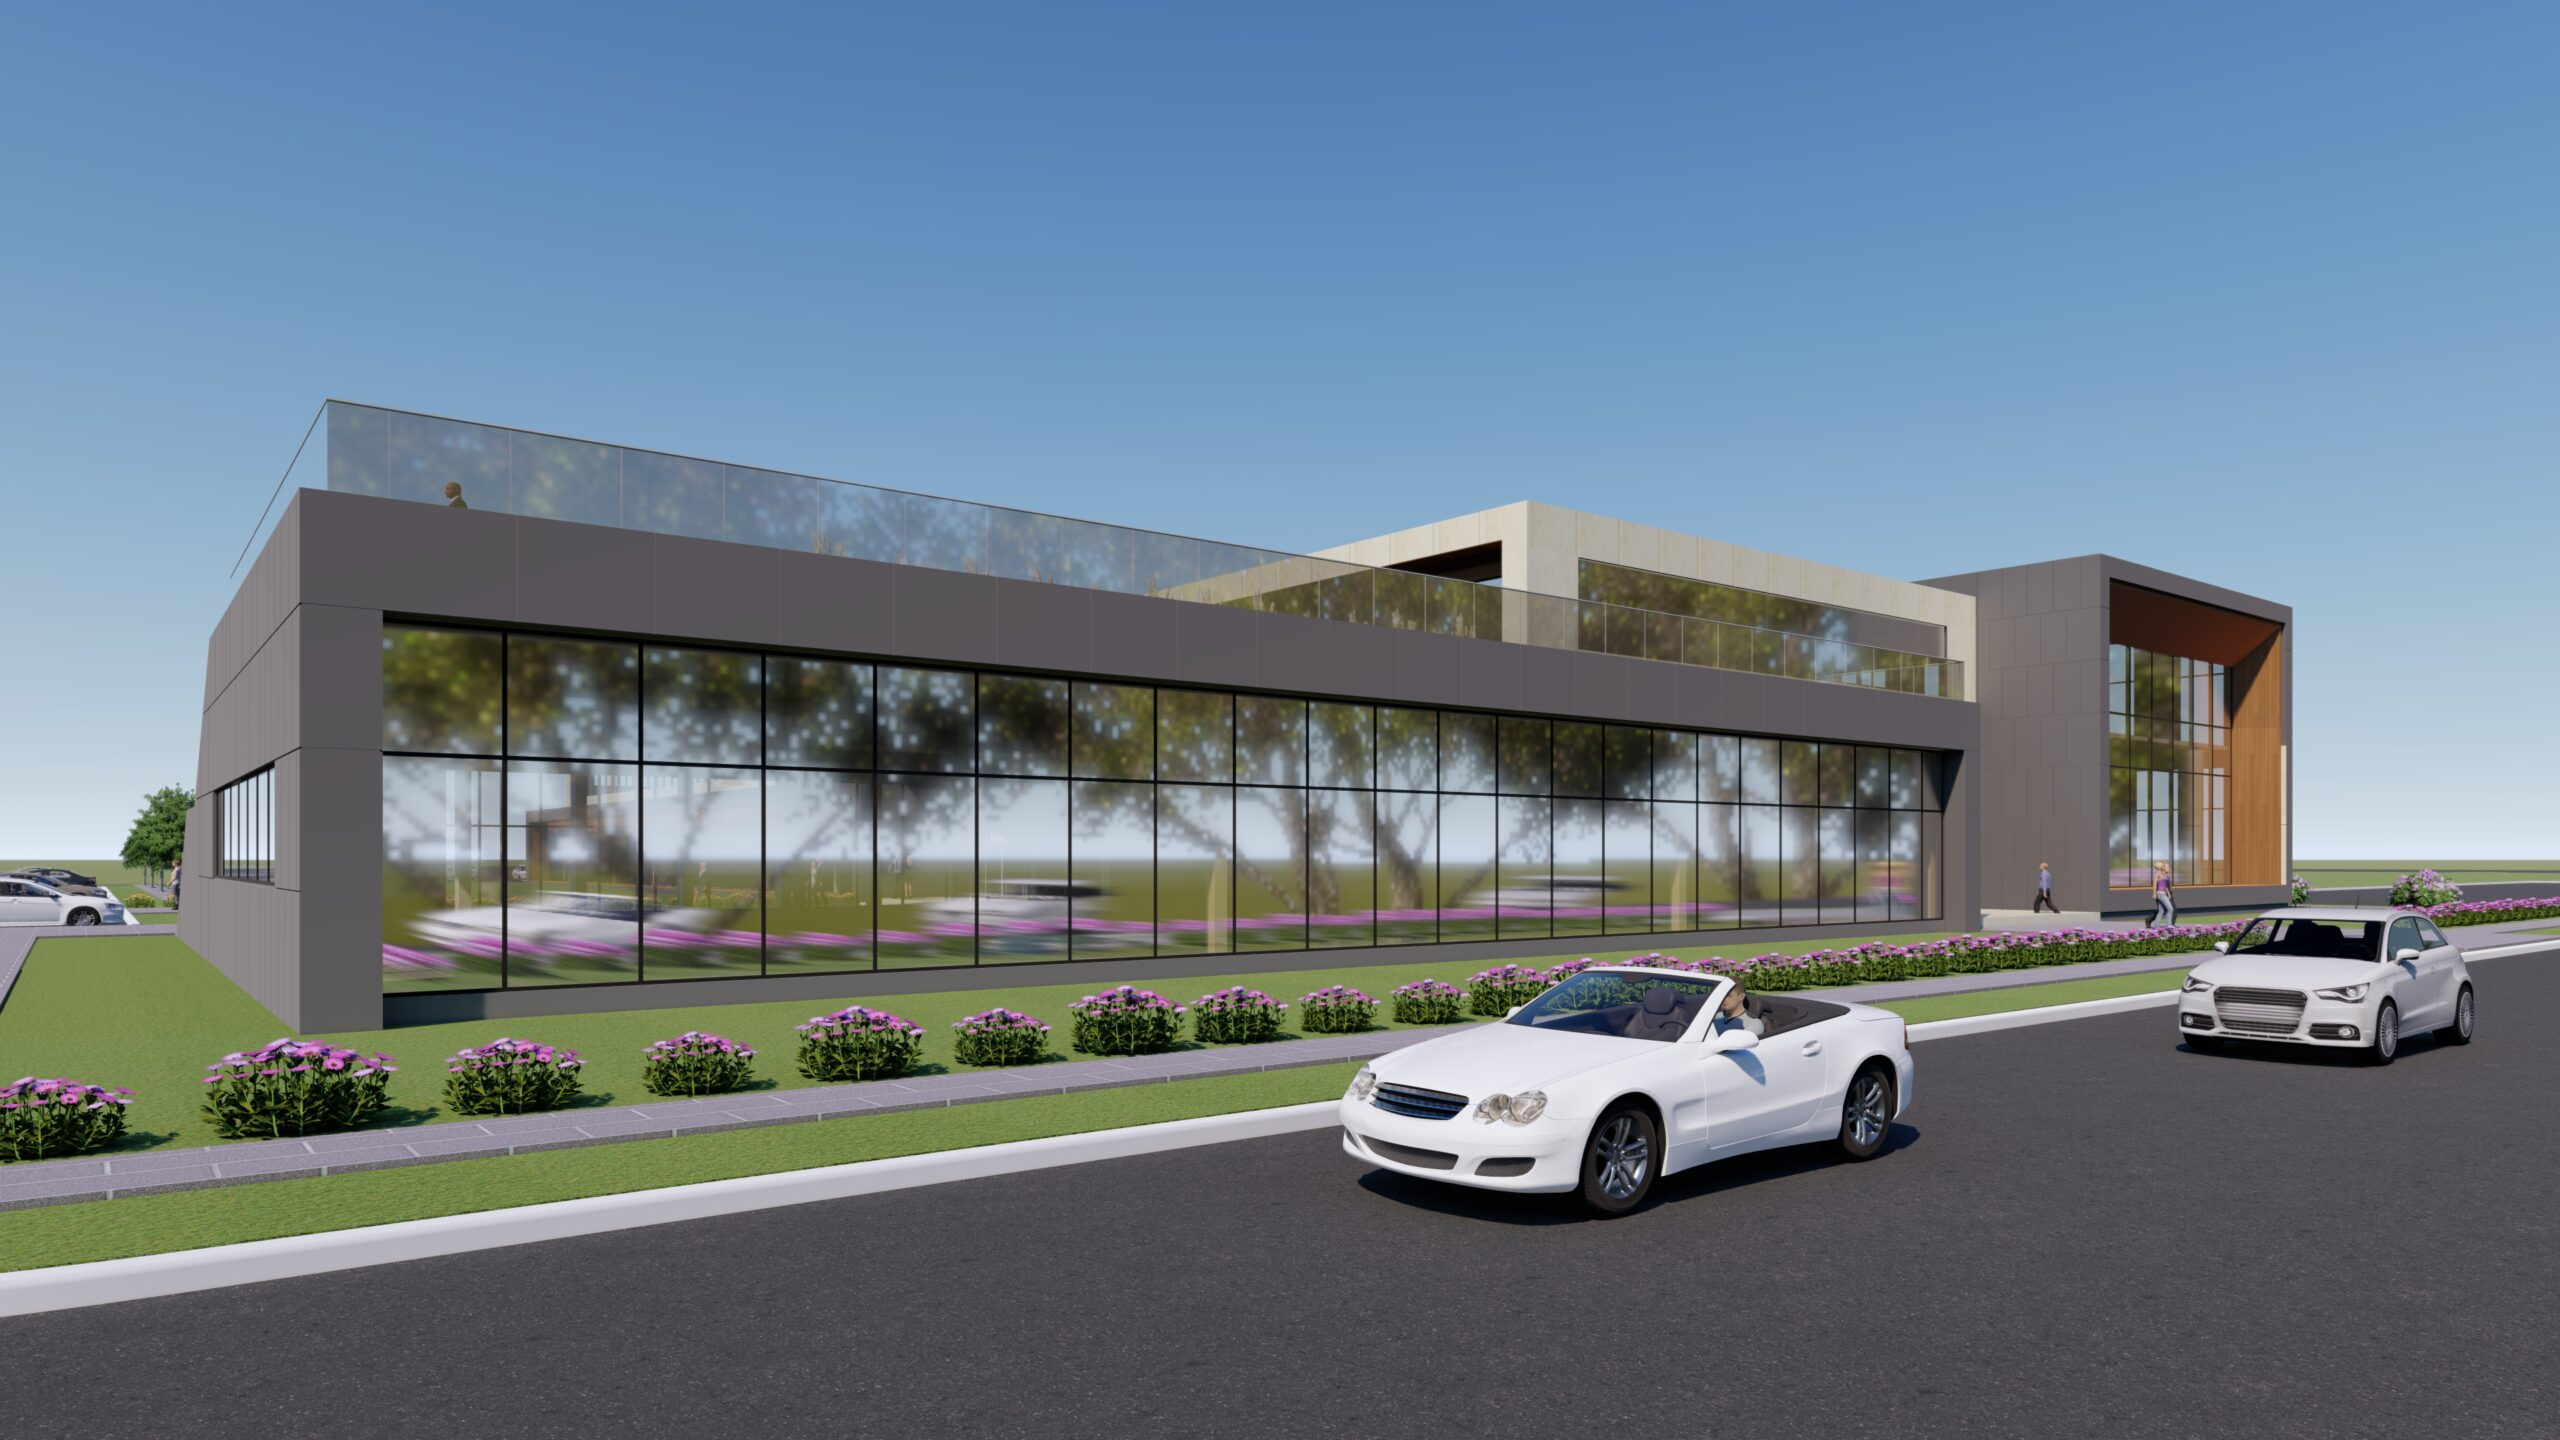 20-06-22-Office-Bldg-F_3d-rendering_6-Photo_add-to-web-scaled